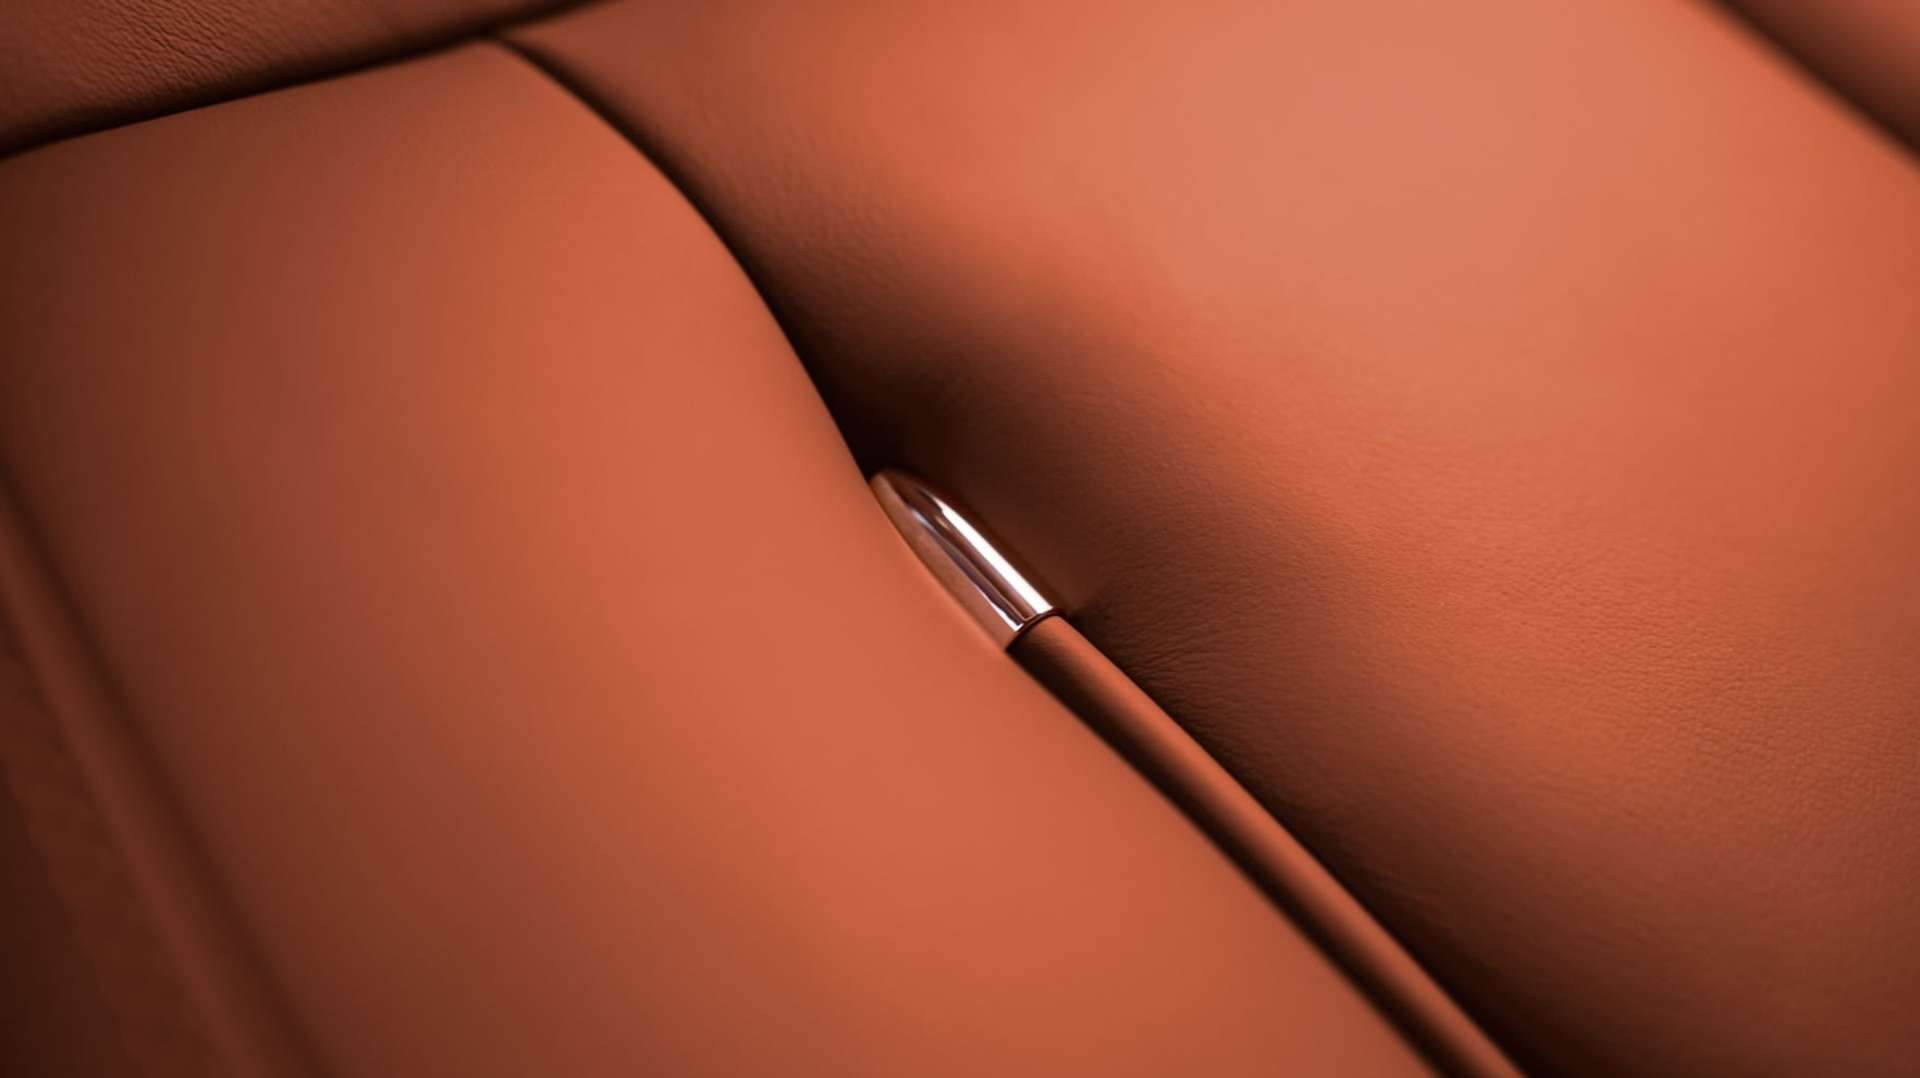 A close up of the leather interior of a Rolls-Royce Phantom Motor Car